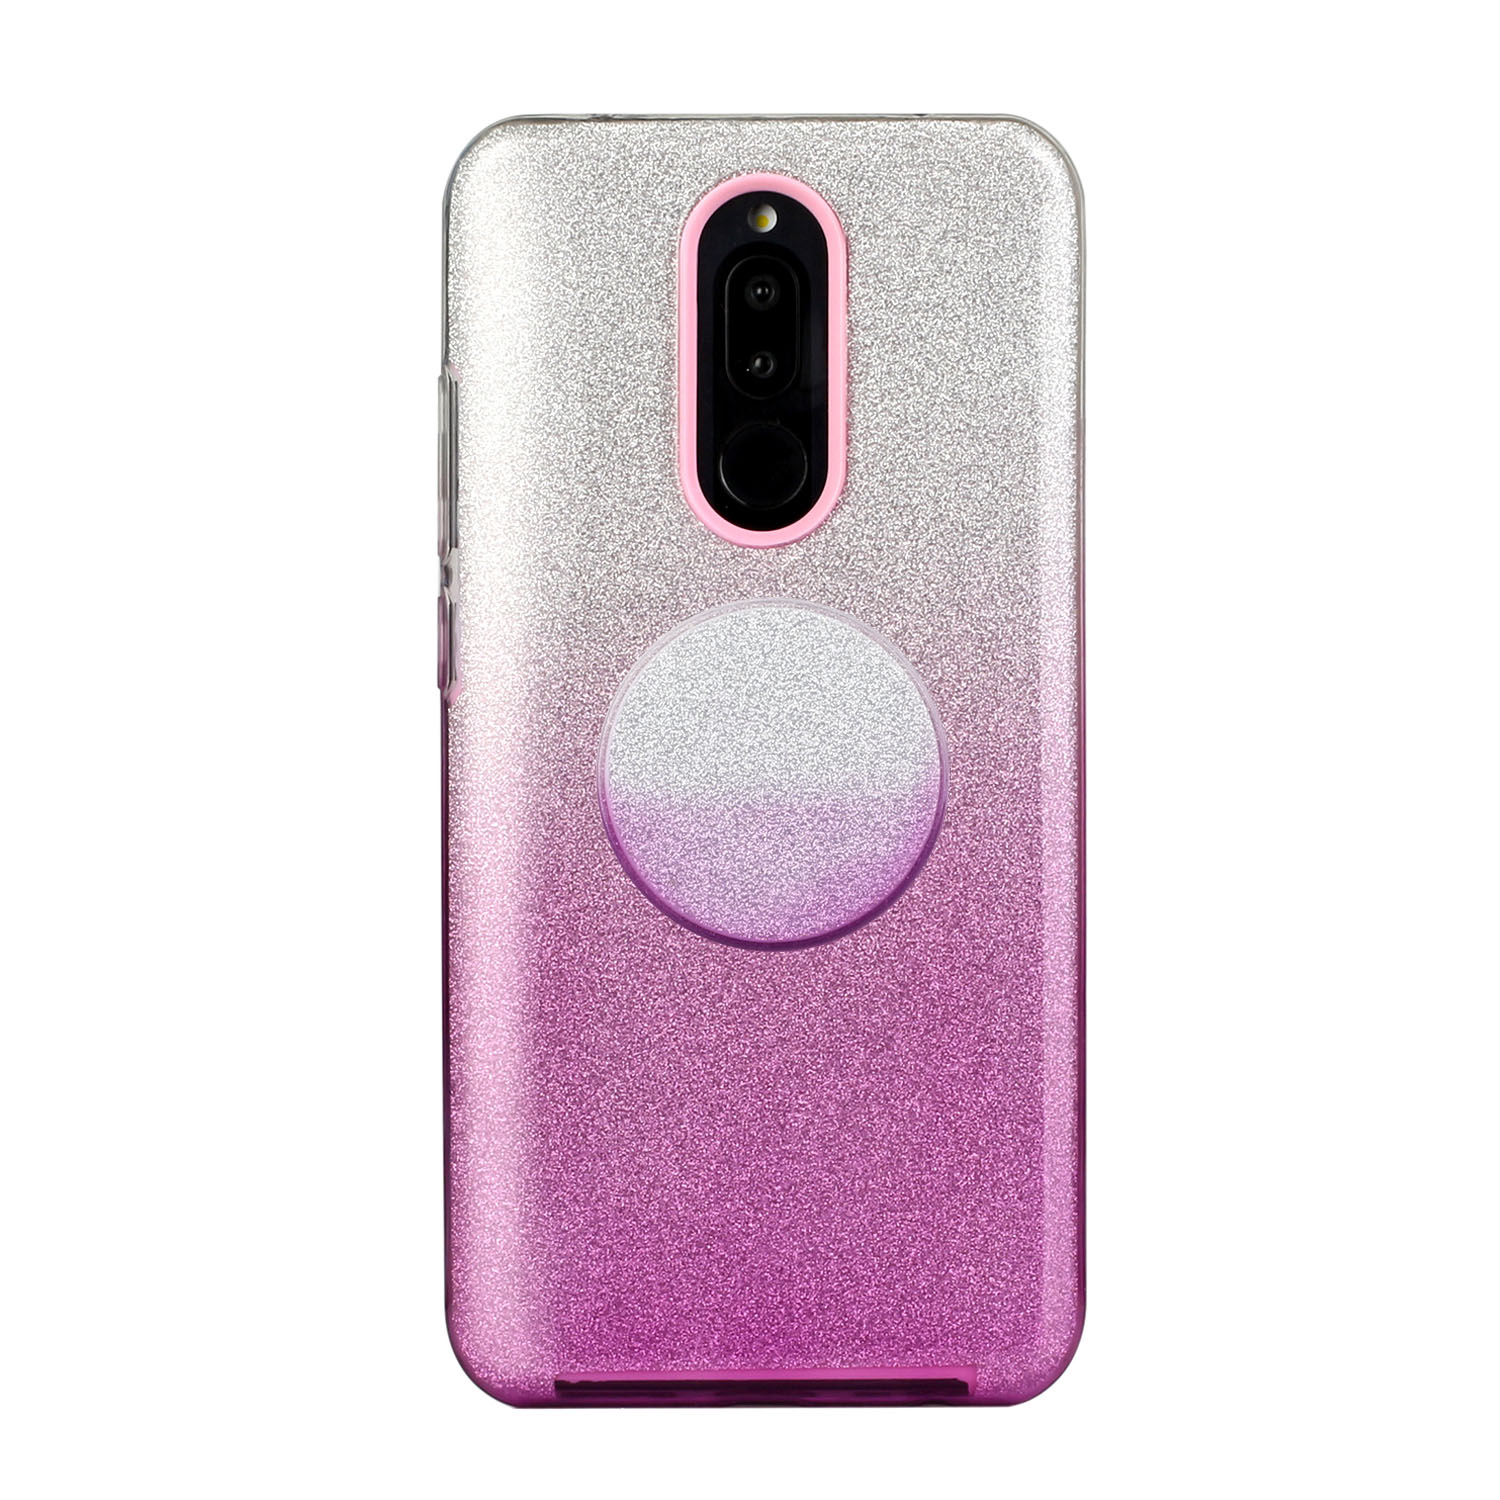 For OPPO F9/F9 Pro/A7X/F11 Pro/A8/A31 Phone Case Gradient Color Glitter Powder Phone Cover with Airbag Bracket purple